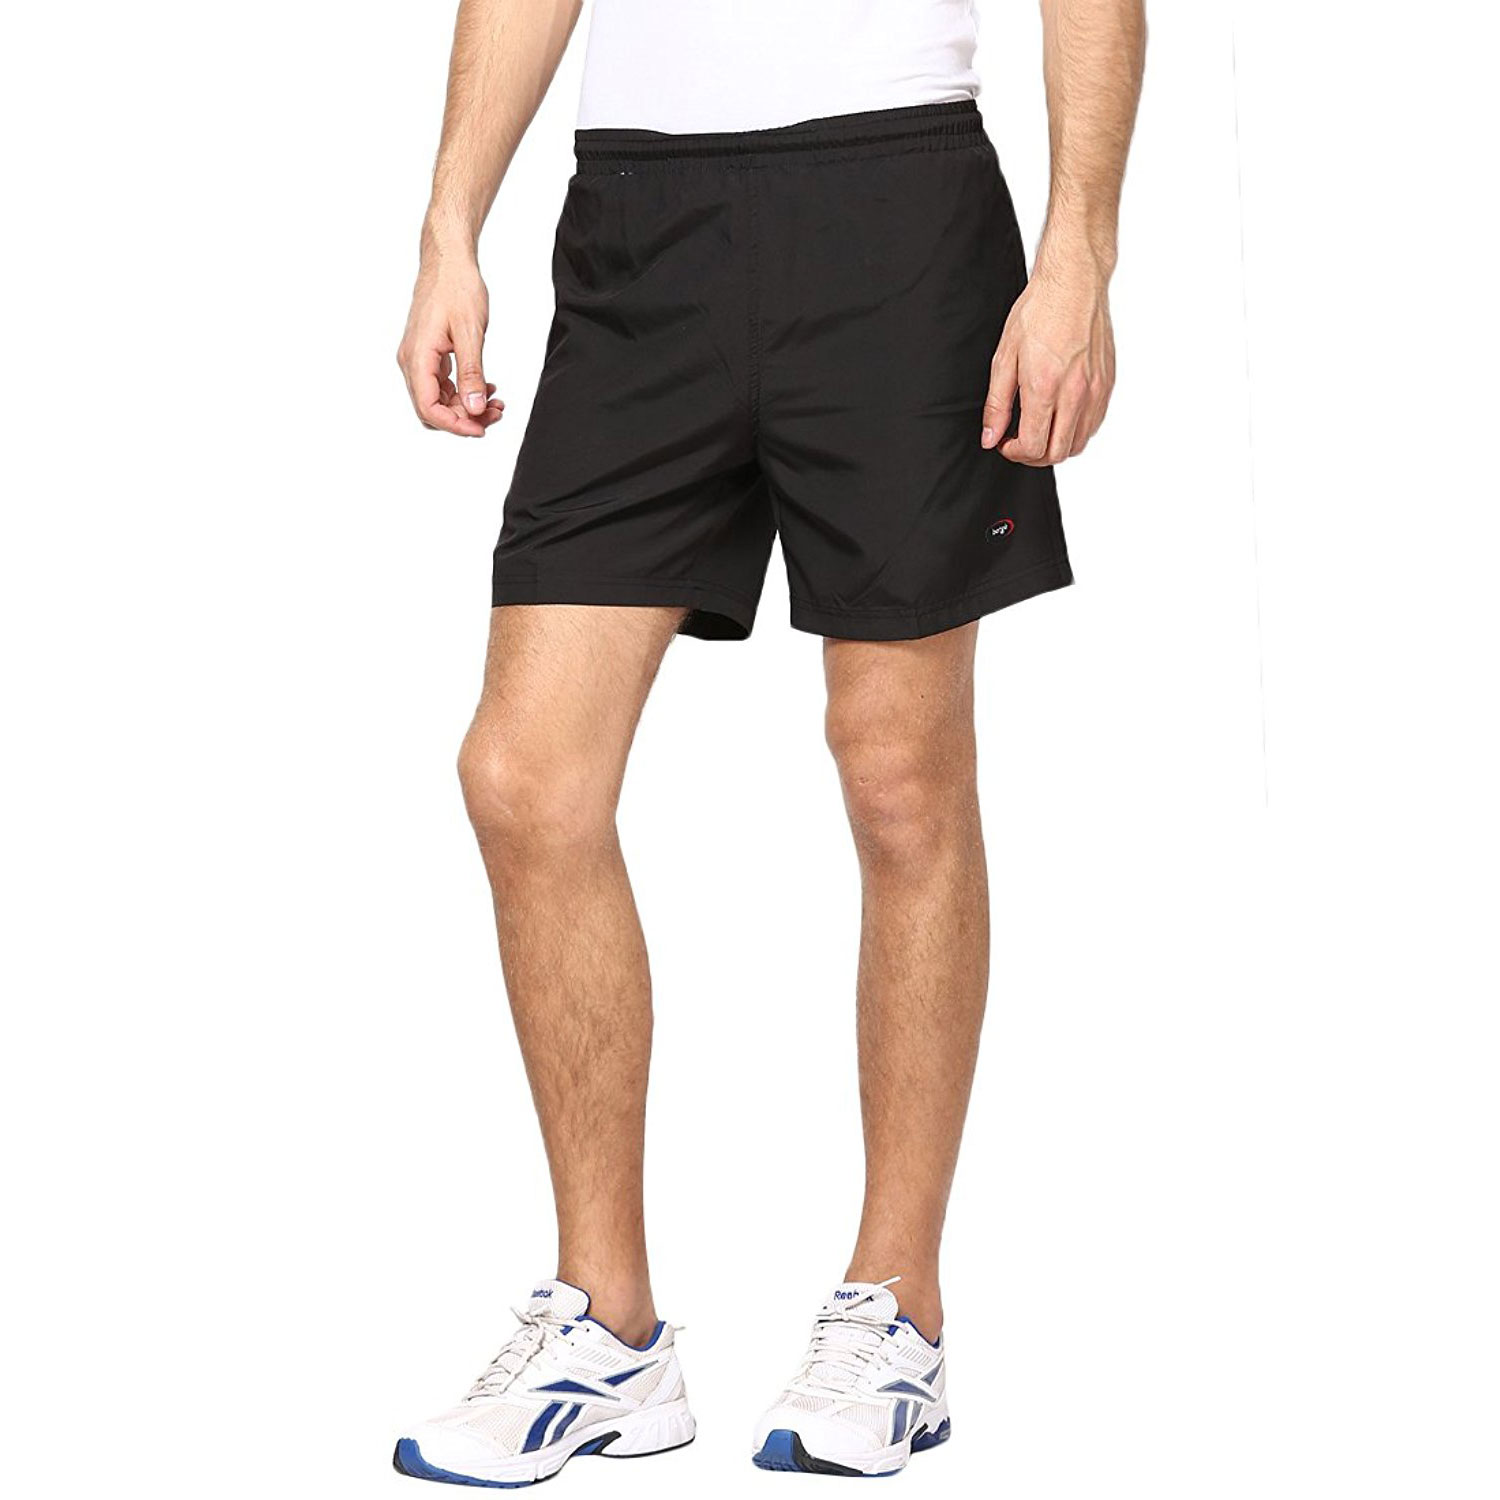 Berge Men's Black Woven Shorts